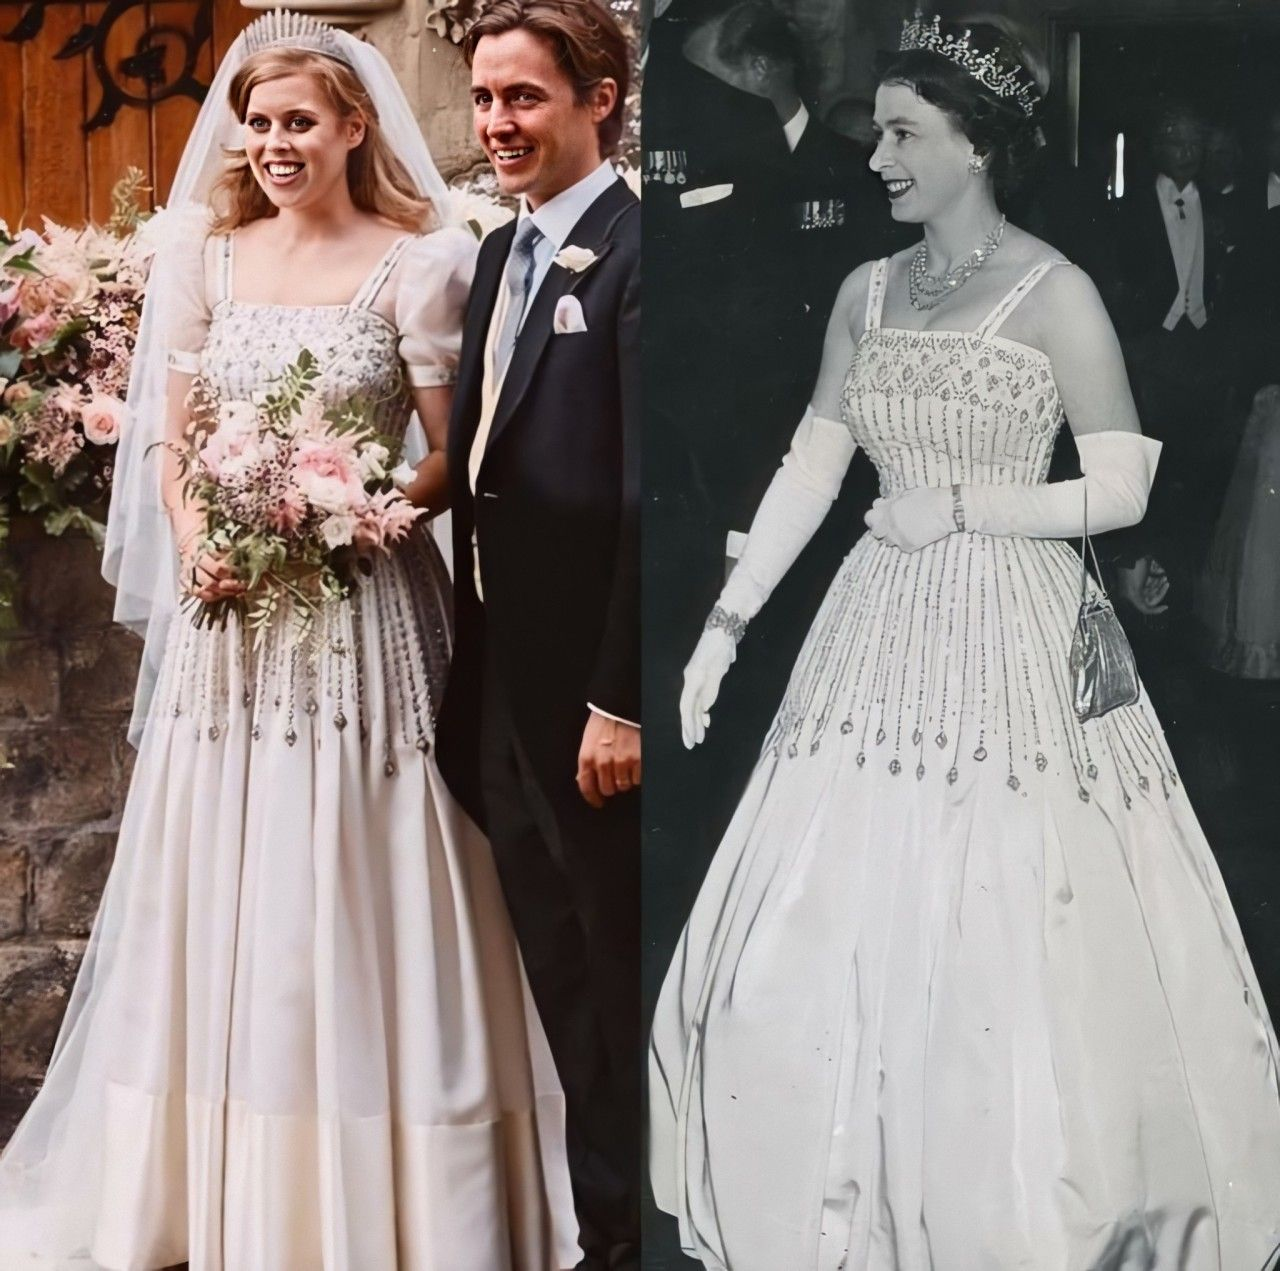 Princess Beatrice Wore A Vintage Dress By Norman Hartnell And The Queen Mary Diamond Frin Princess Beatrice Wedding Royal Wedding Dress Queen Elizabeth Wedding [ 1271 x 1280 Pixel ]